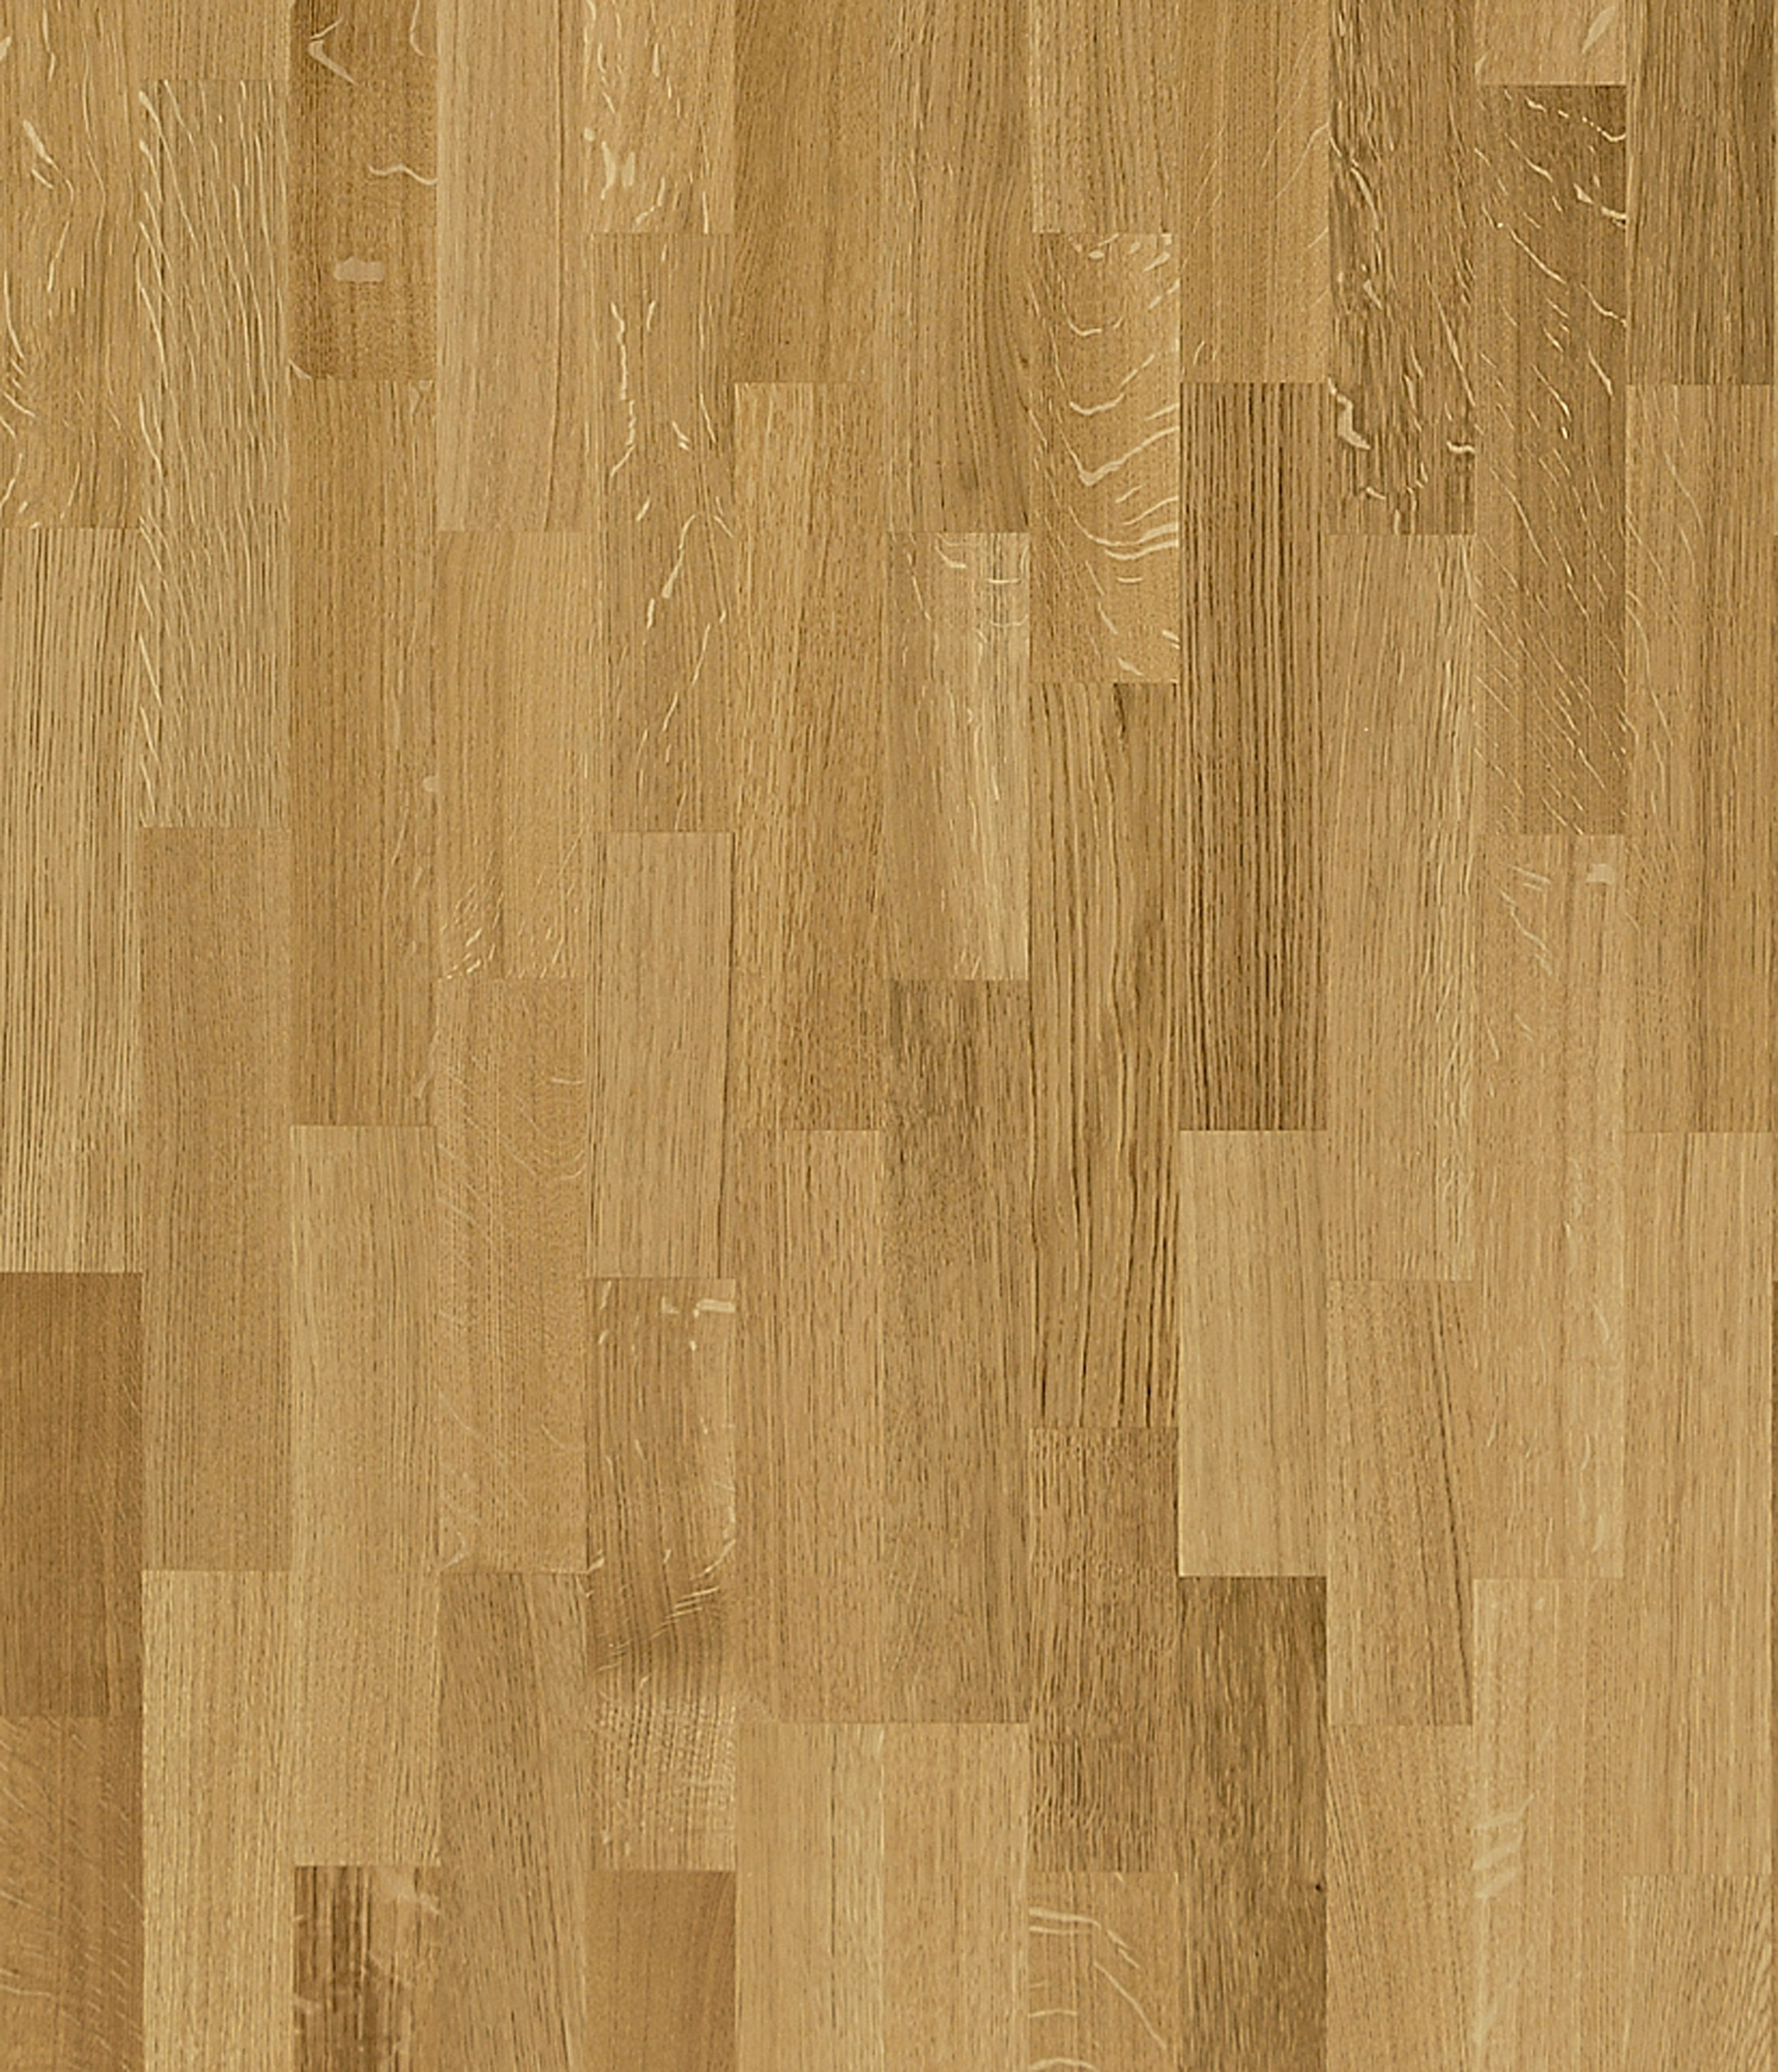 K hrs wood flooring parquet interior design www for Wood floor map